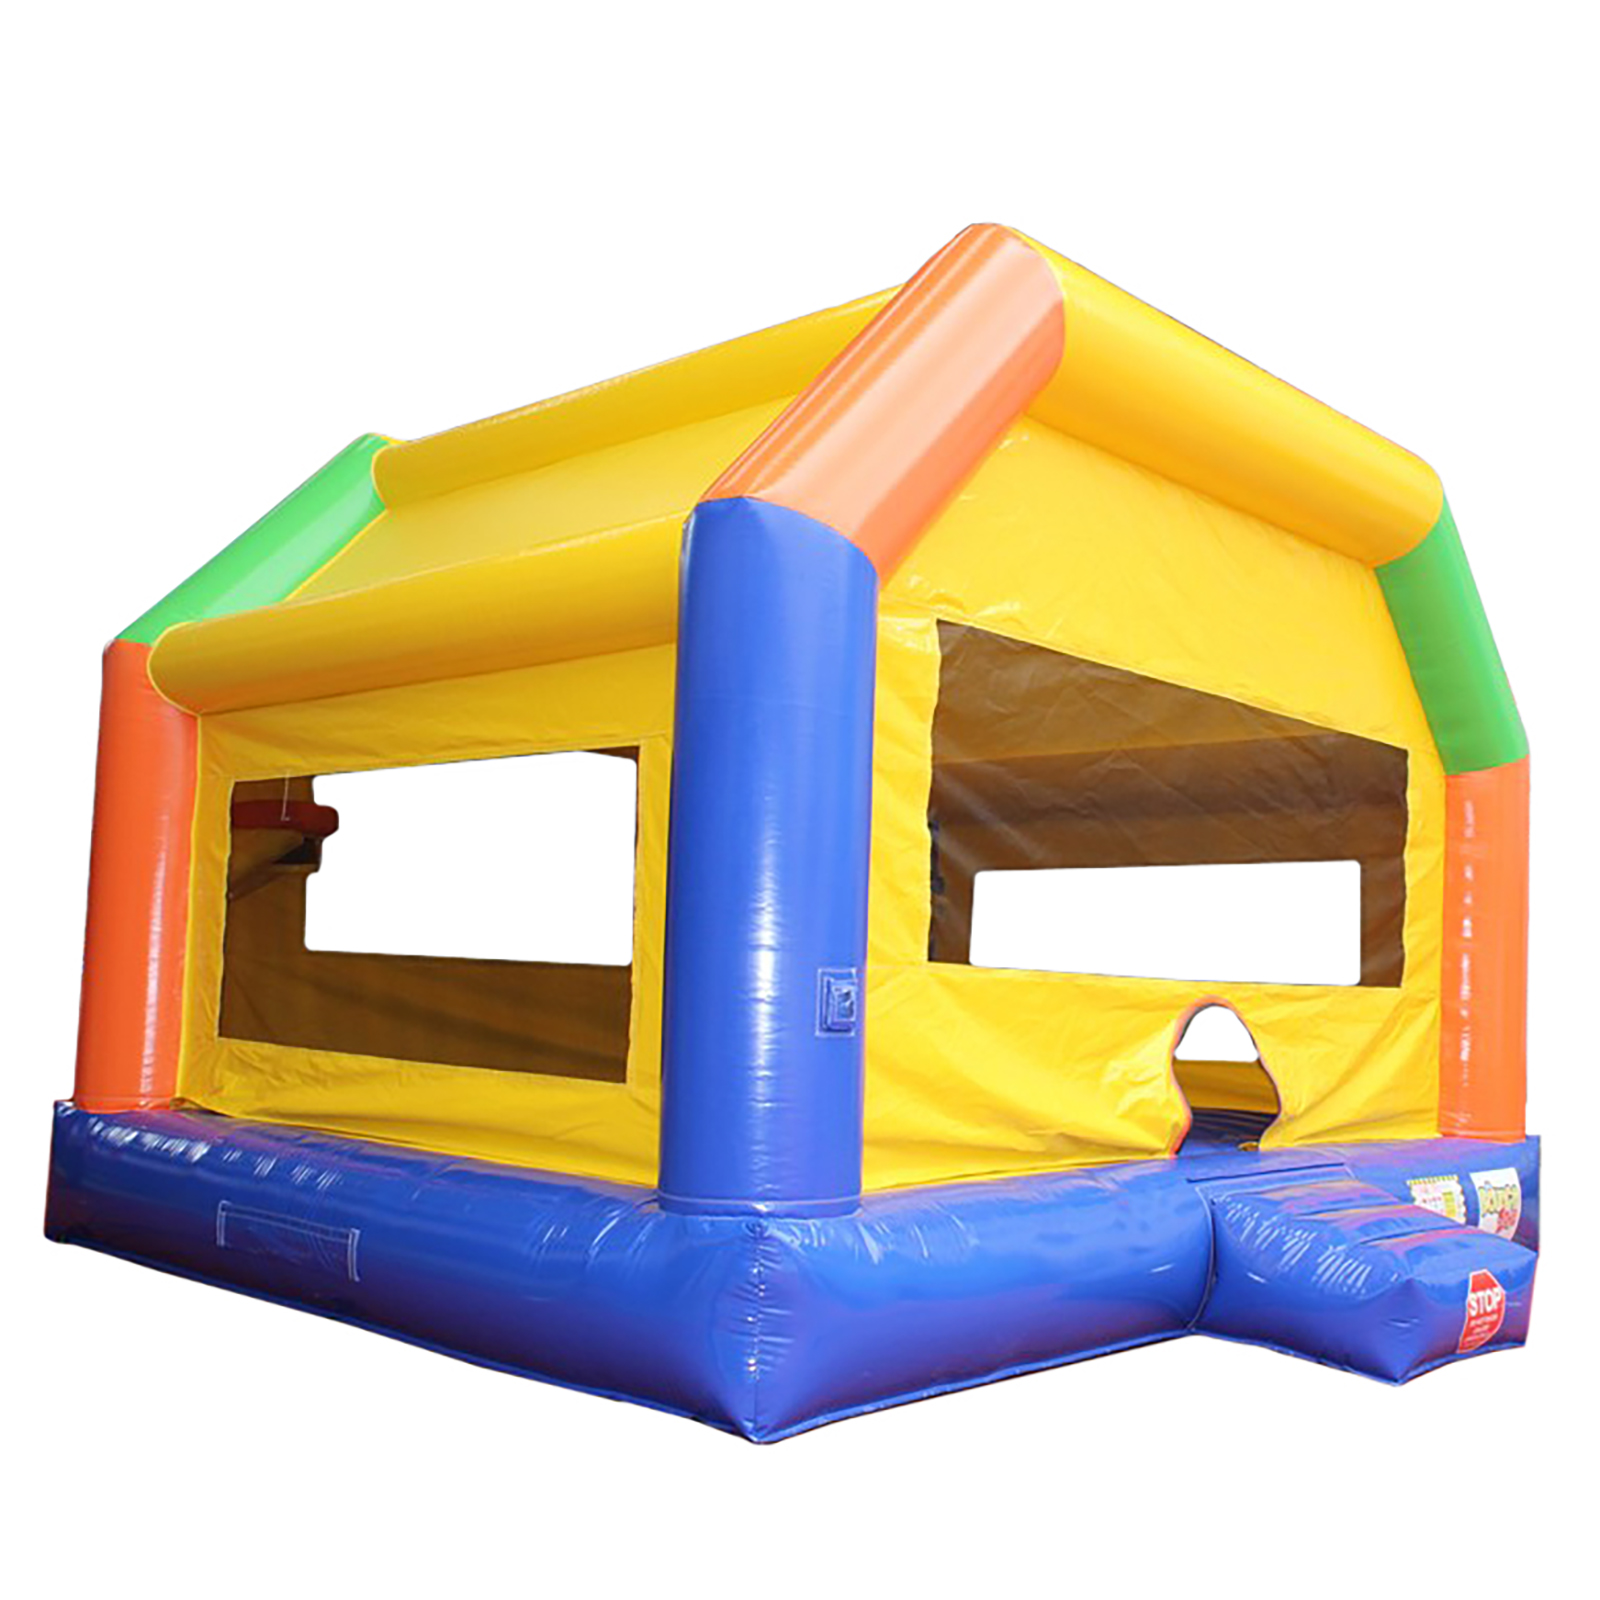 Inflatable Commercial Grade Bounce House Large 100% PVC With Blower